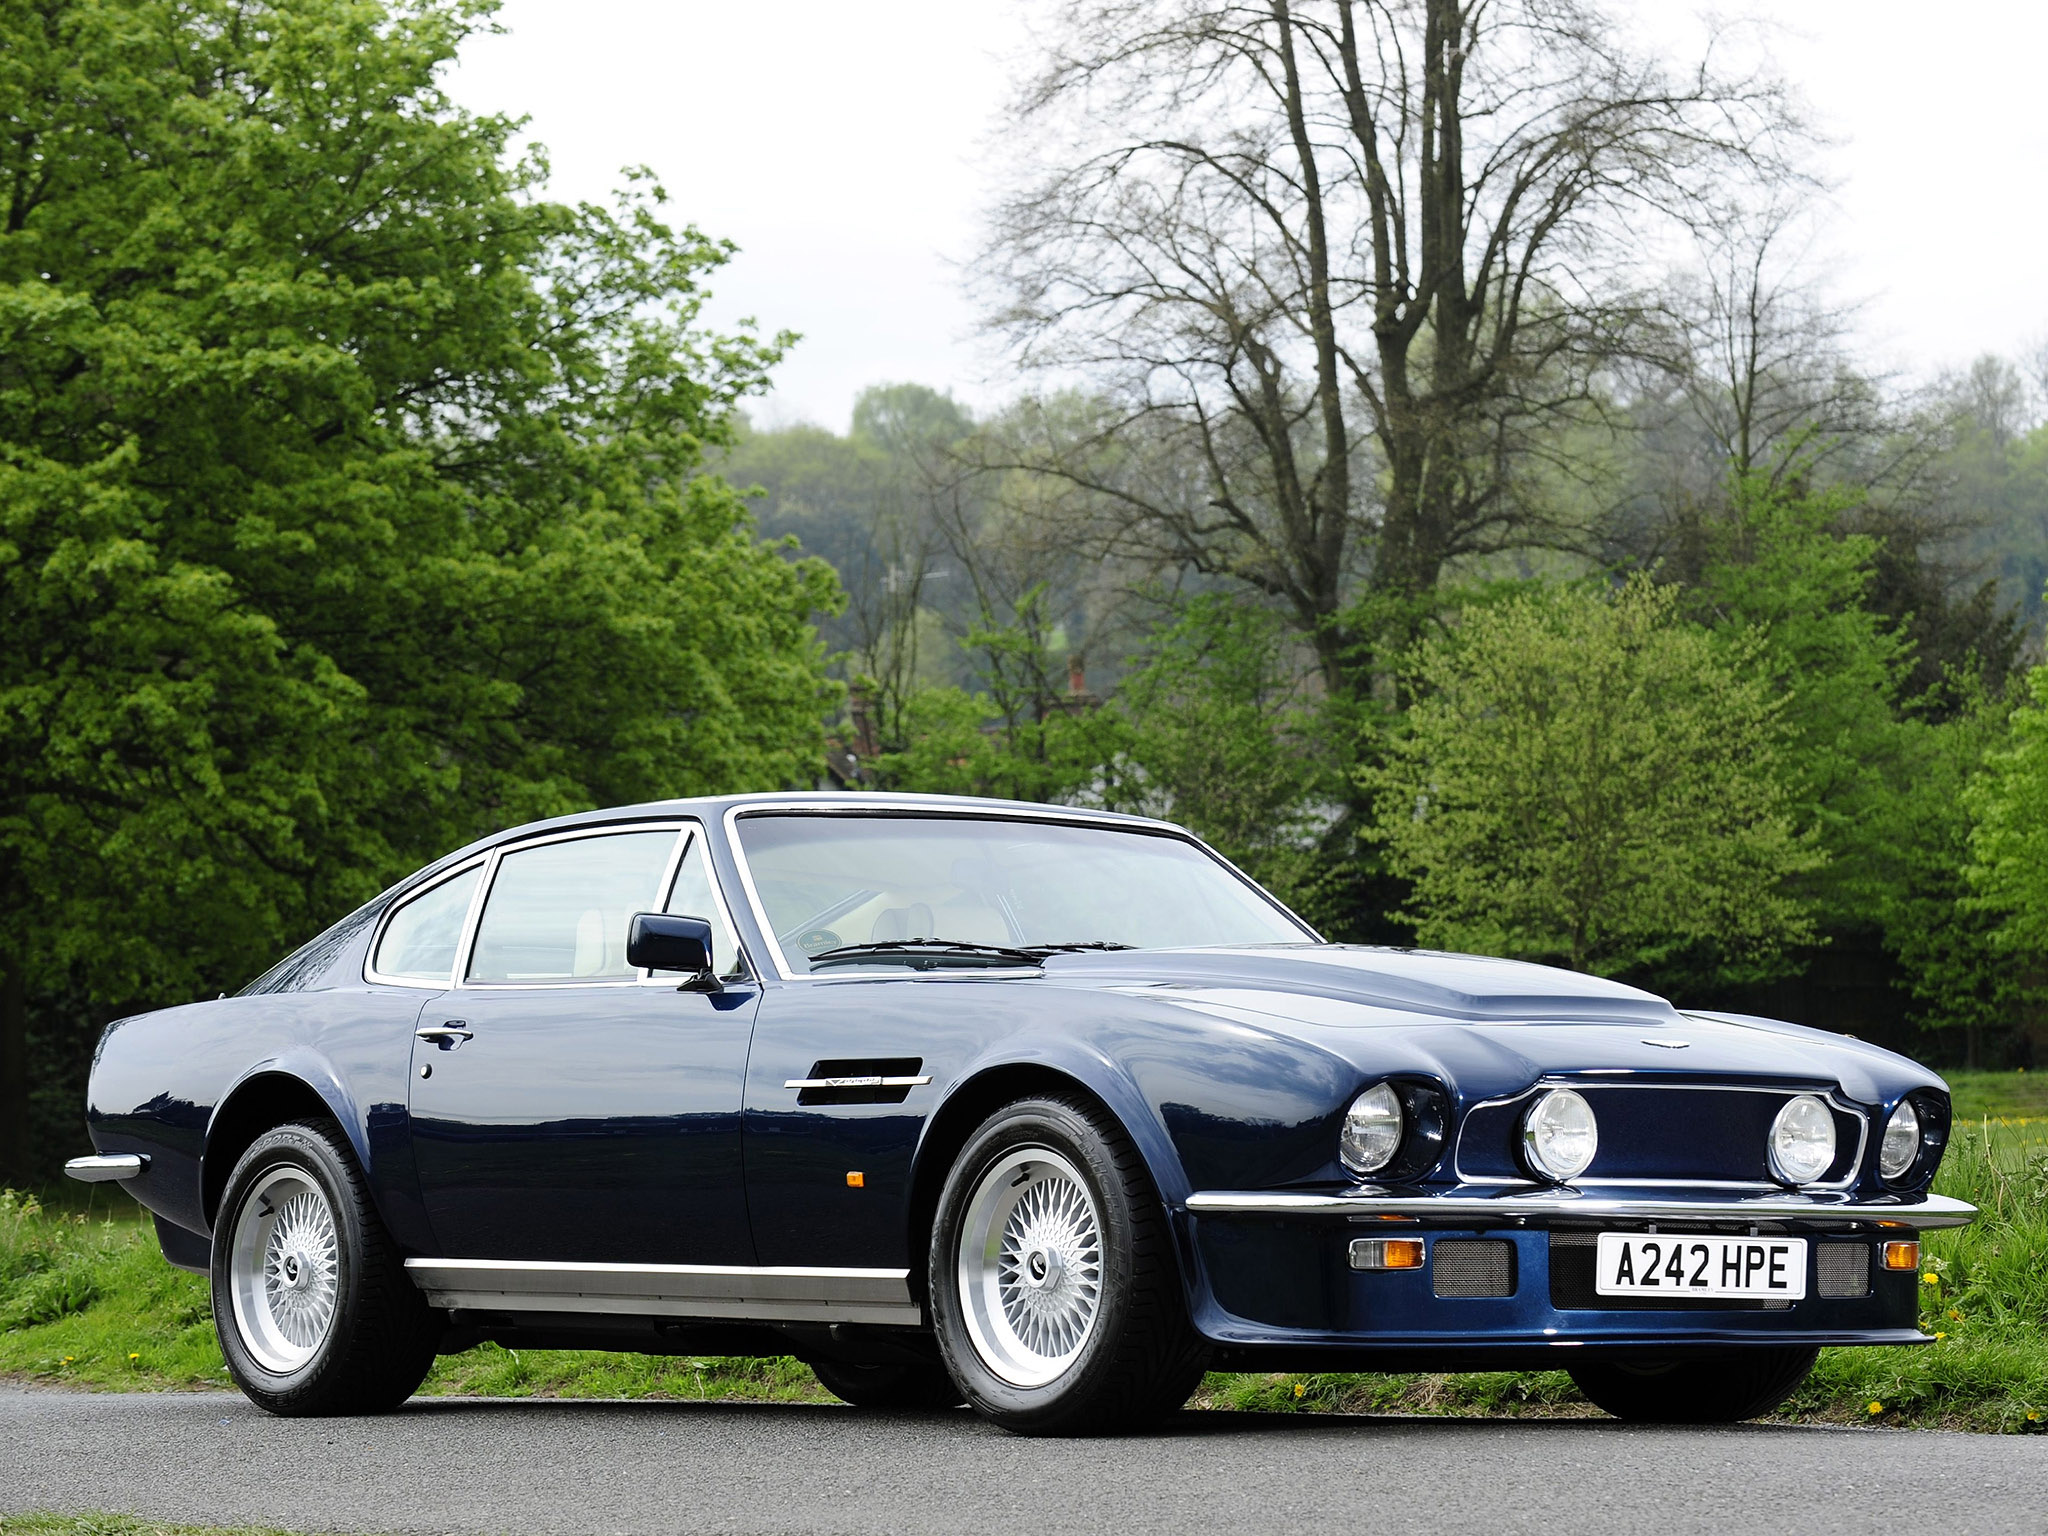 tuning aston martin v8 vantage coupe 1977 online accessories and spare parts for tuning aston. Black Bedroom Furniture Sets. Home Design Ideas